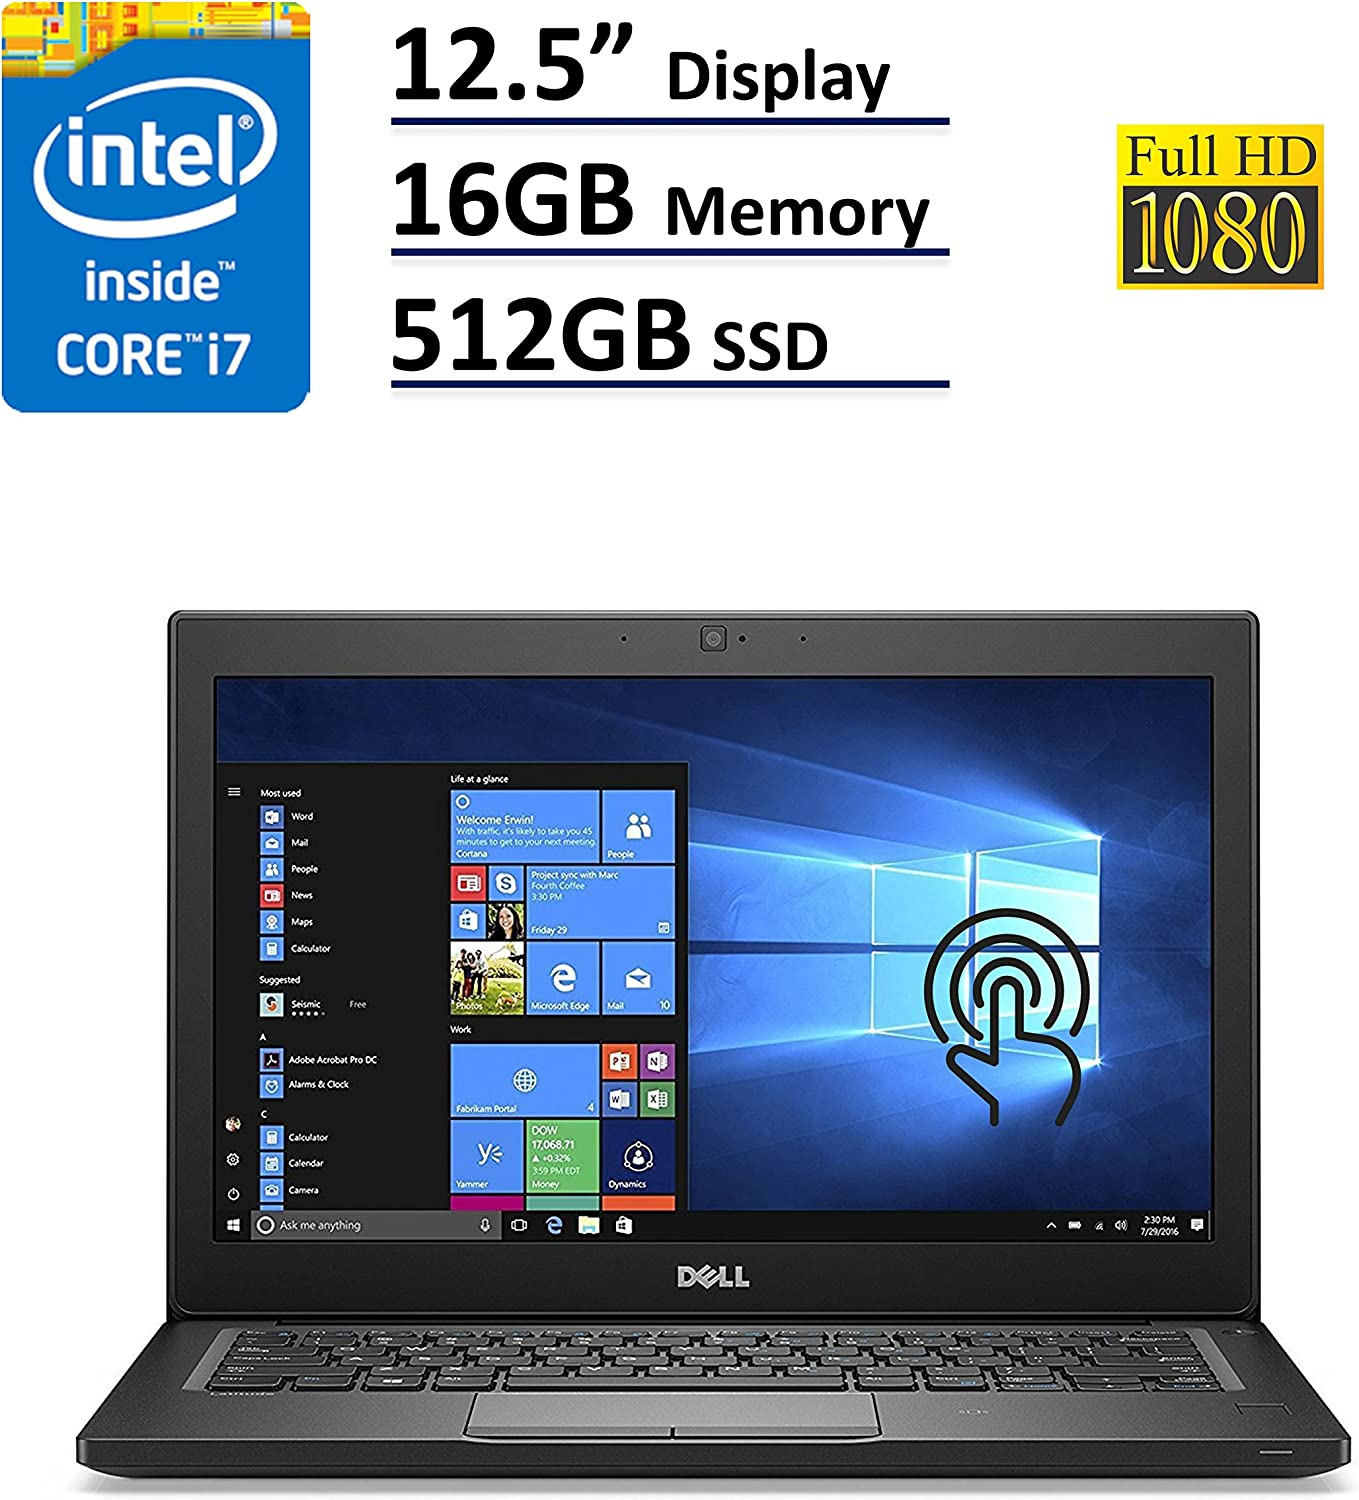 Dell Latitude 7000 7280 Business Ultrabook - 12.5in Gorilla Glass Touchscreen FHD (1920X1080), Intel i7-7600U, 512GB SSD, 16GB DDR4, Backlit Keys, FP Reader, Windows 10 Pro (Renewed)